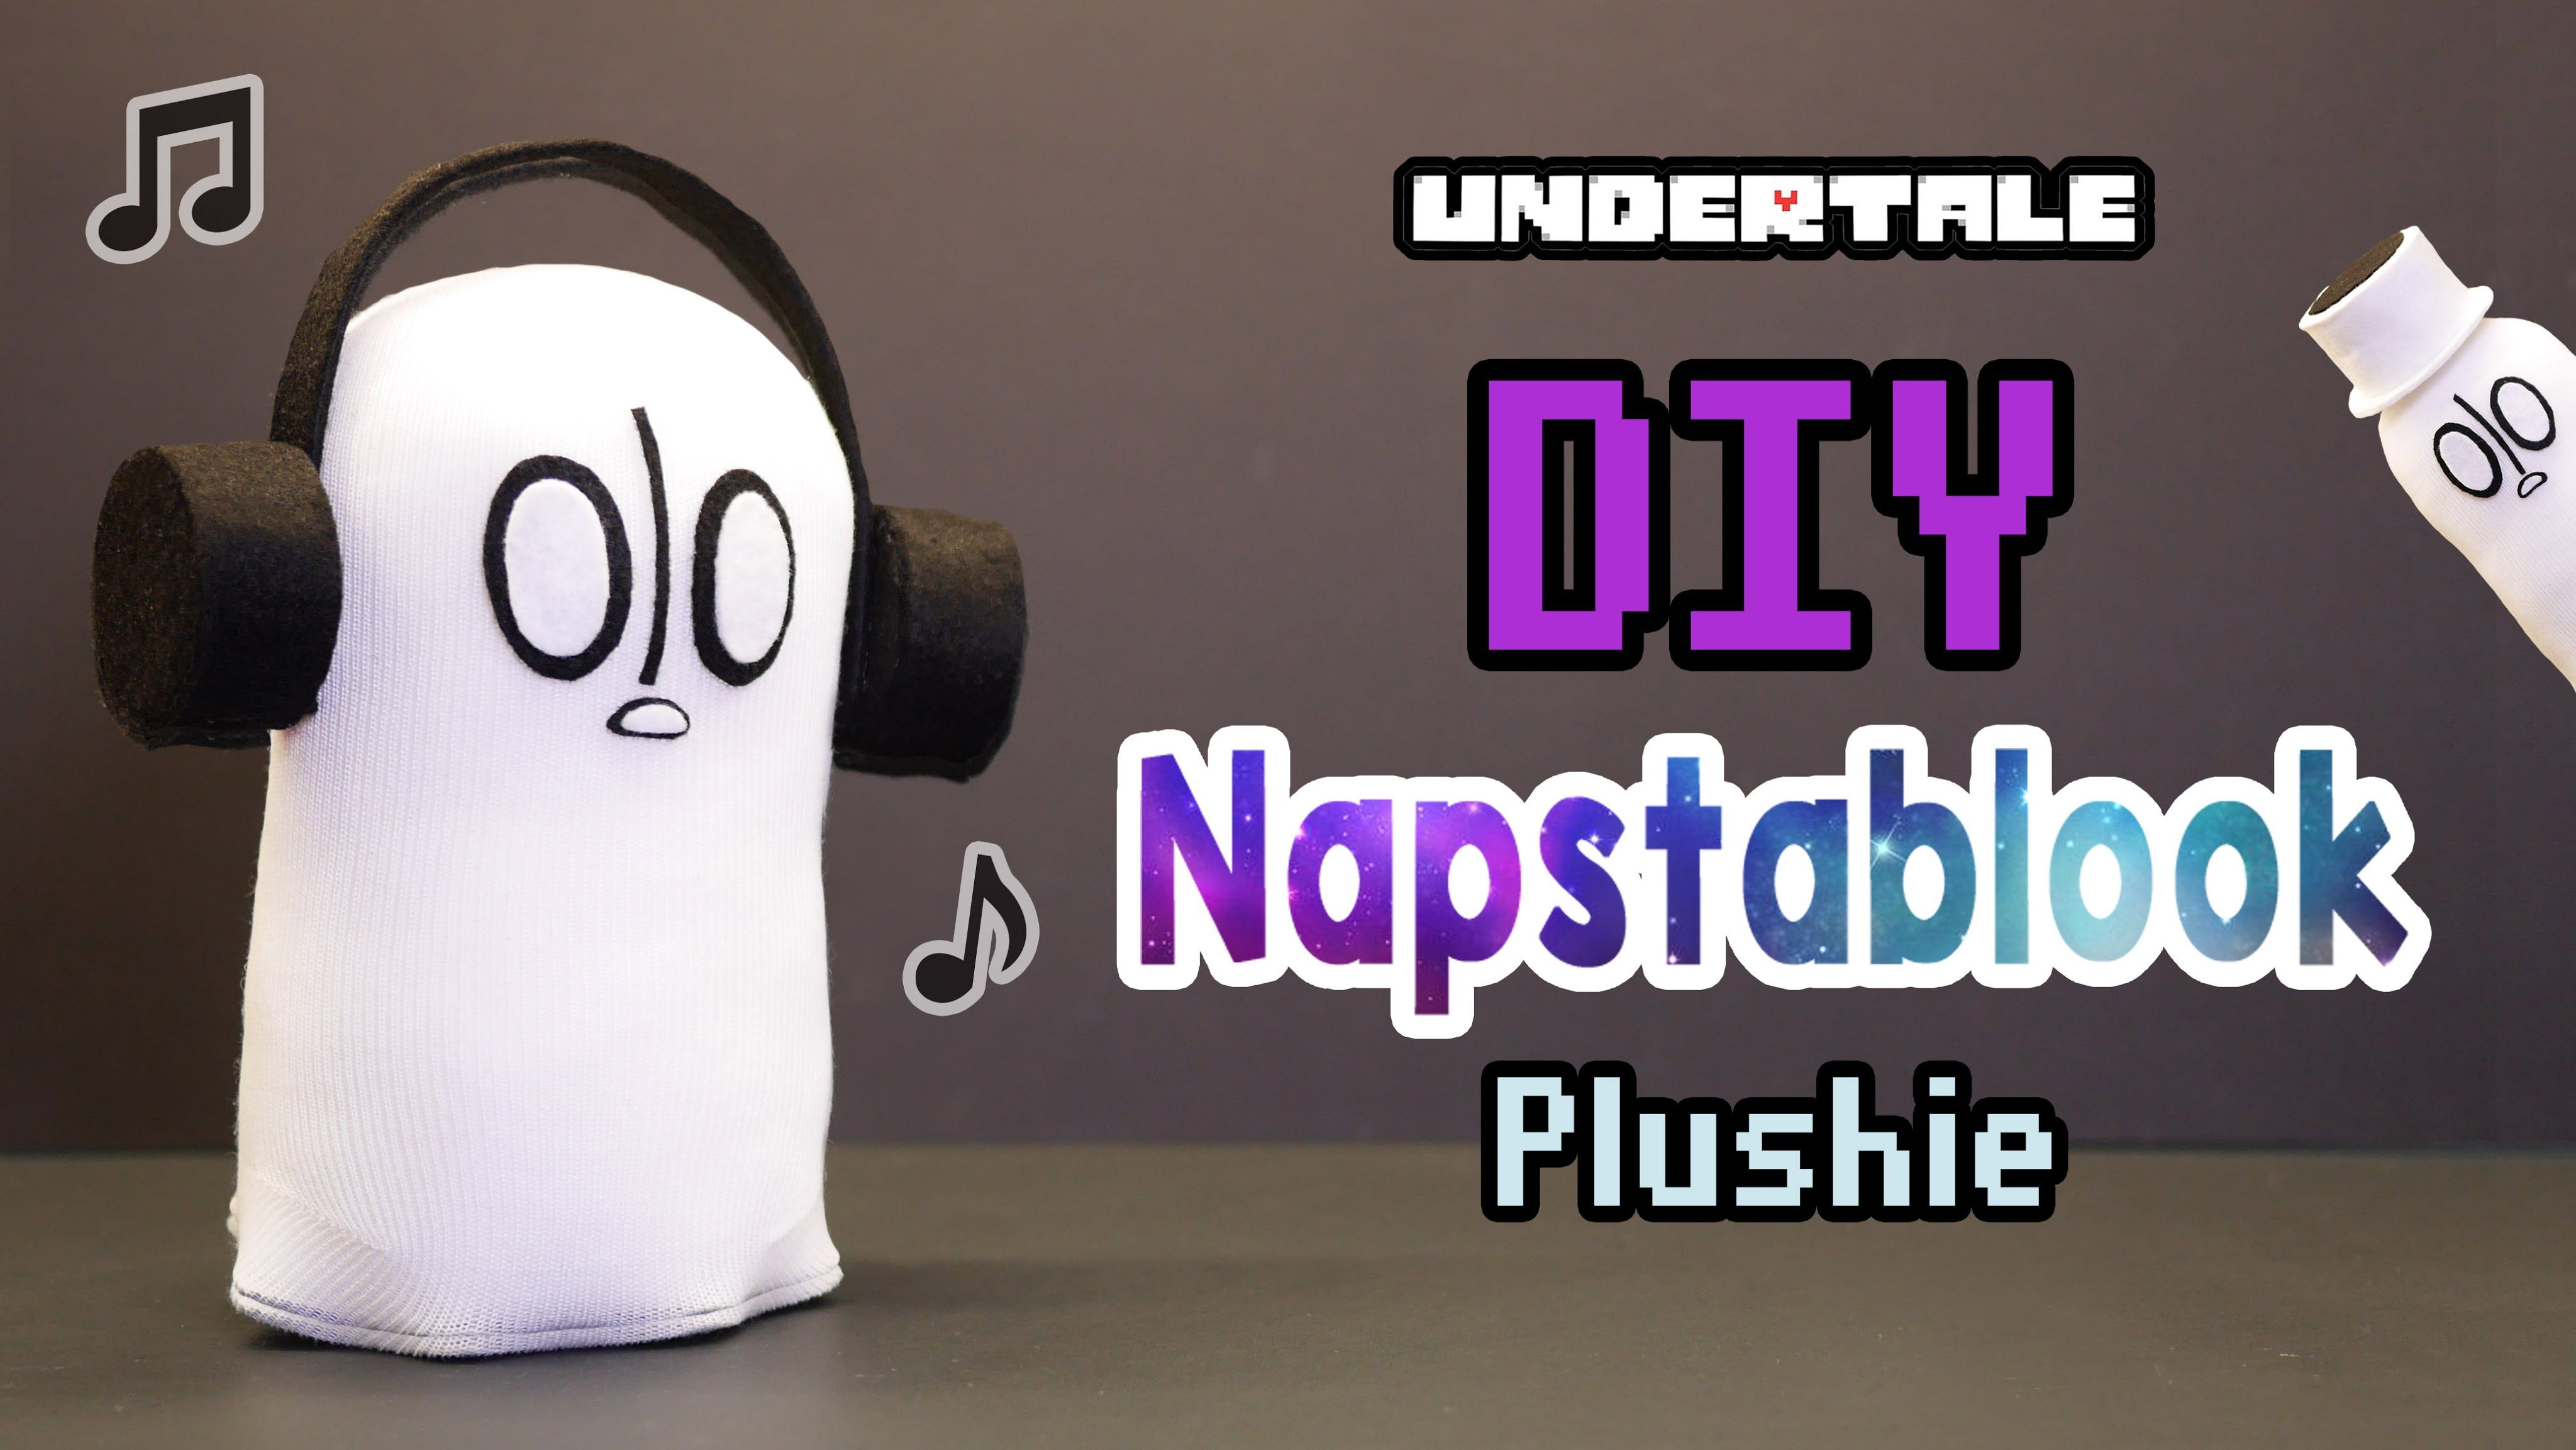 I'm showing you how to make a very easy DIY Undertale plush using cheap